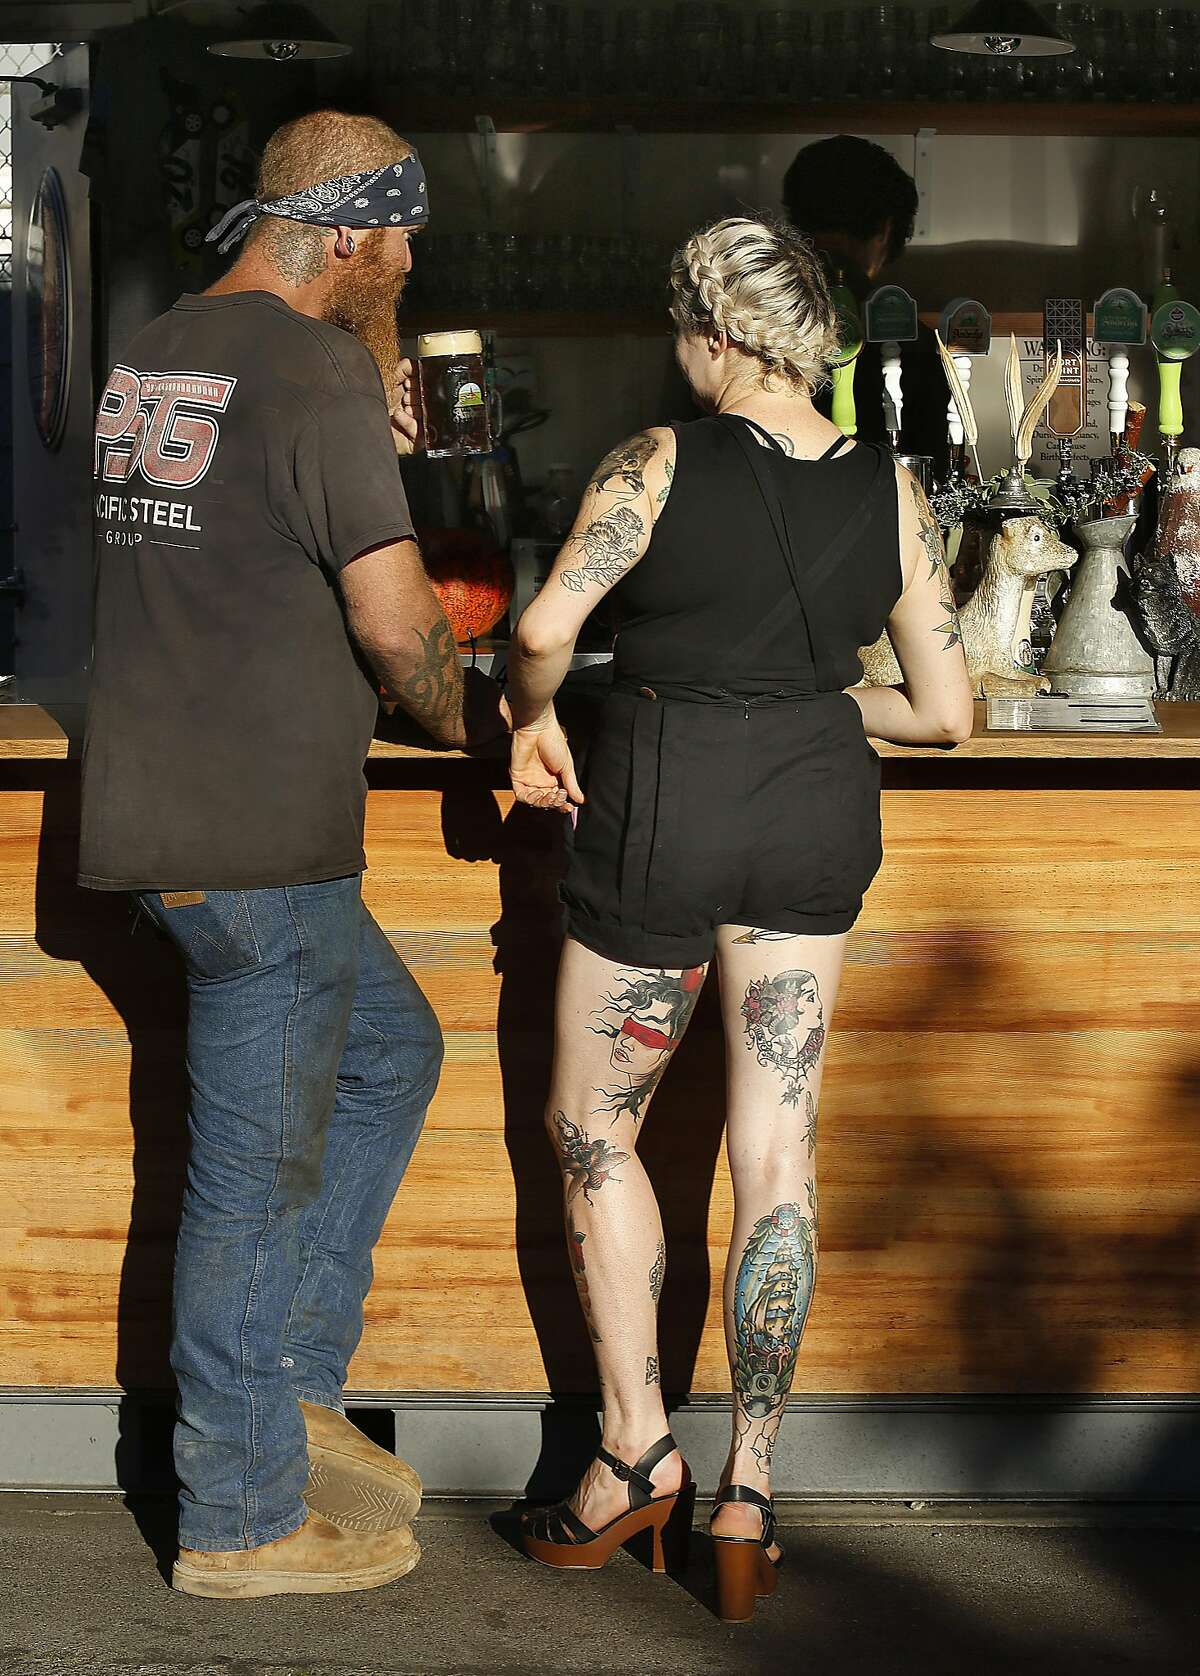 Patrons get beers at the bar at Biergarten on Thursday, October 20 ,2016, in San Francisco, Calif.